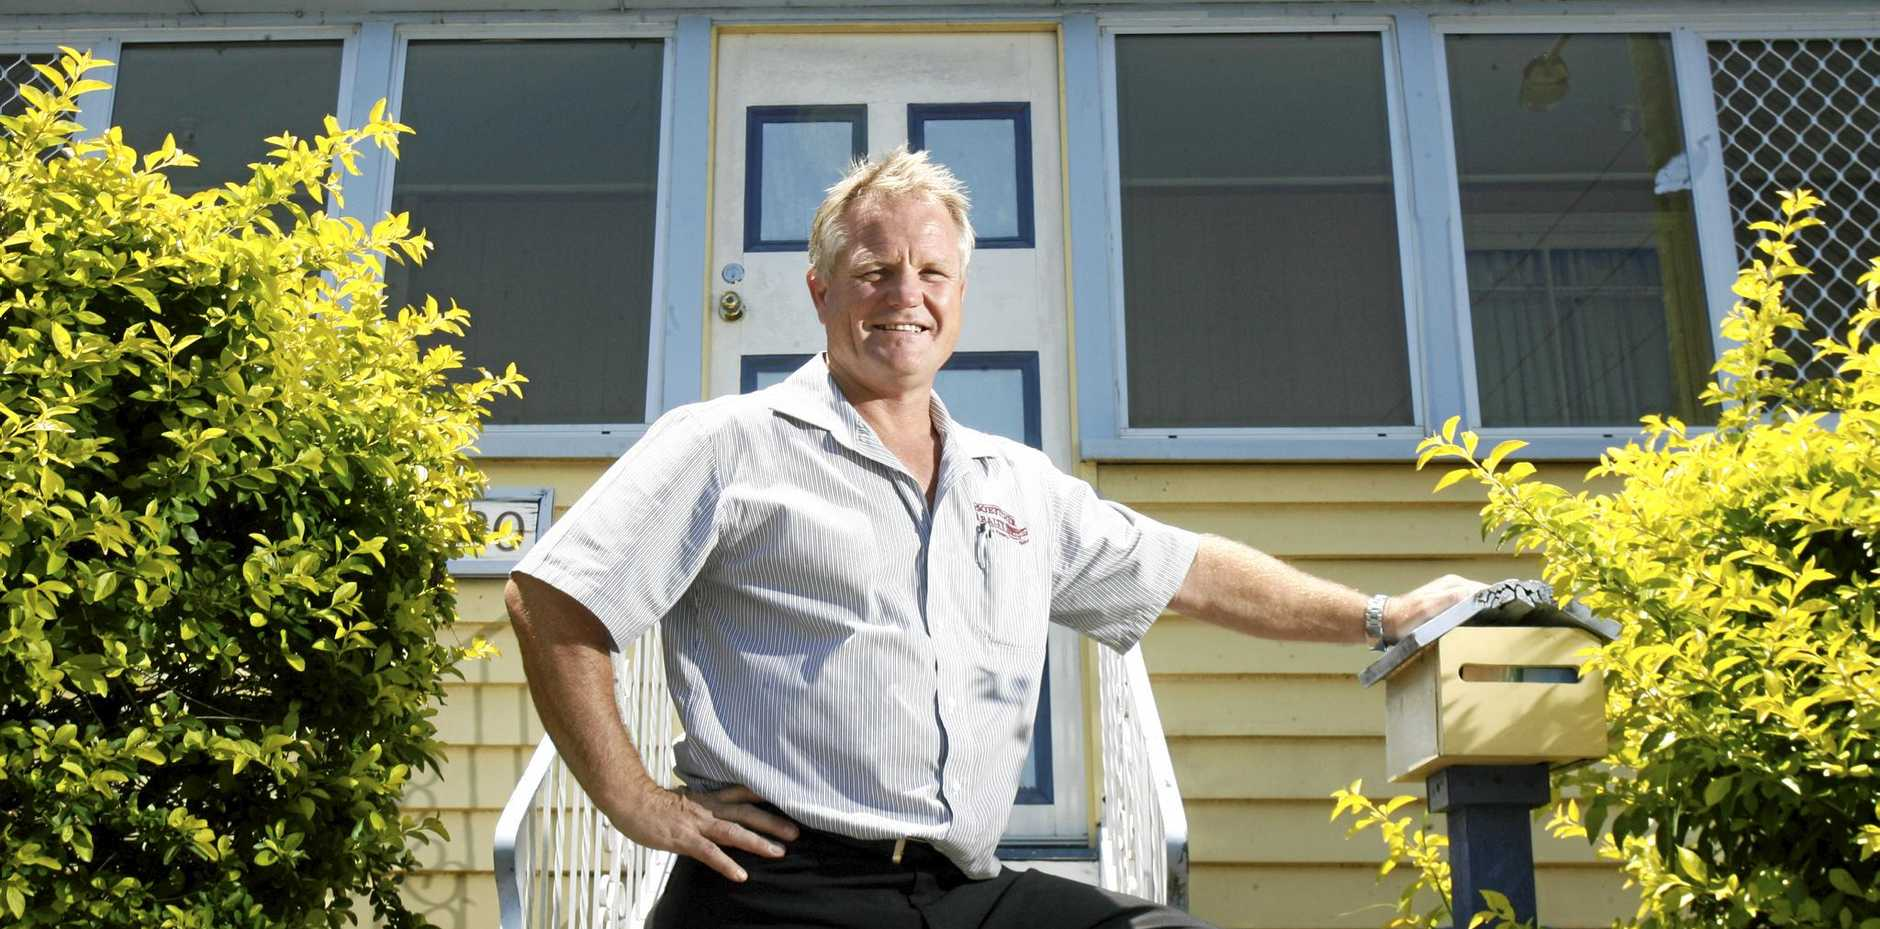 Darren Boettcher is the new REIQ chairman for the Ipswich region. Photo: Rob Williams / The Queensland Times